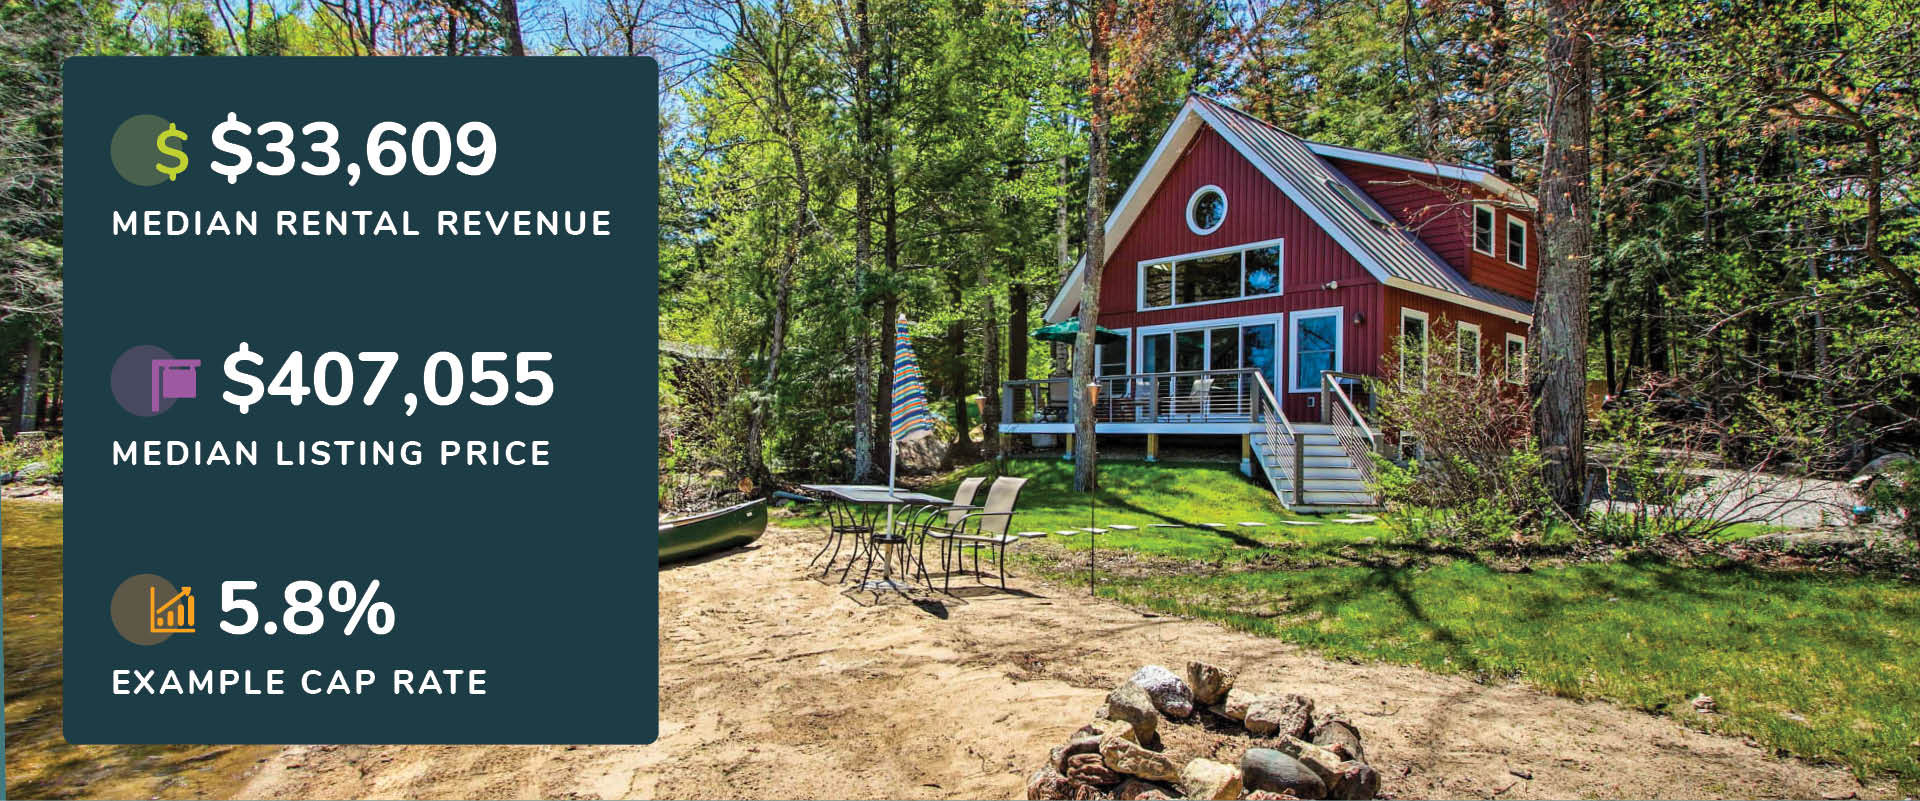 Graphic showing Gilford, New Hampshire lake house rental revenue, listing price, and cap rate with a picture of a red home with water access